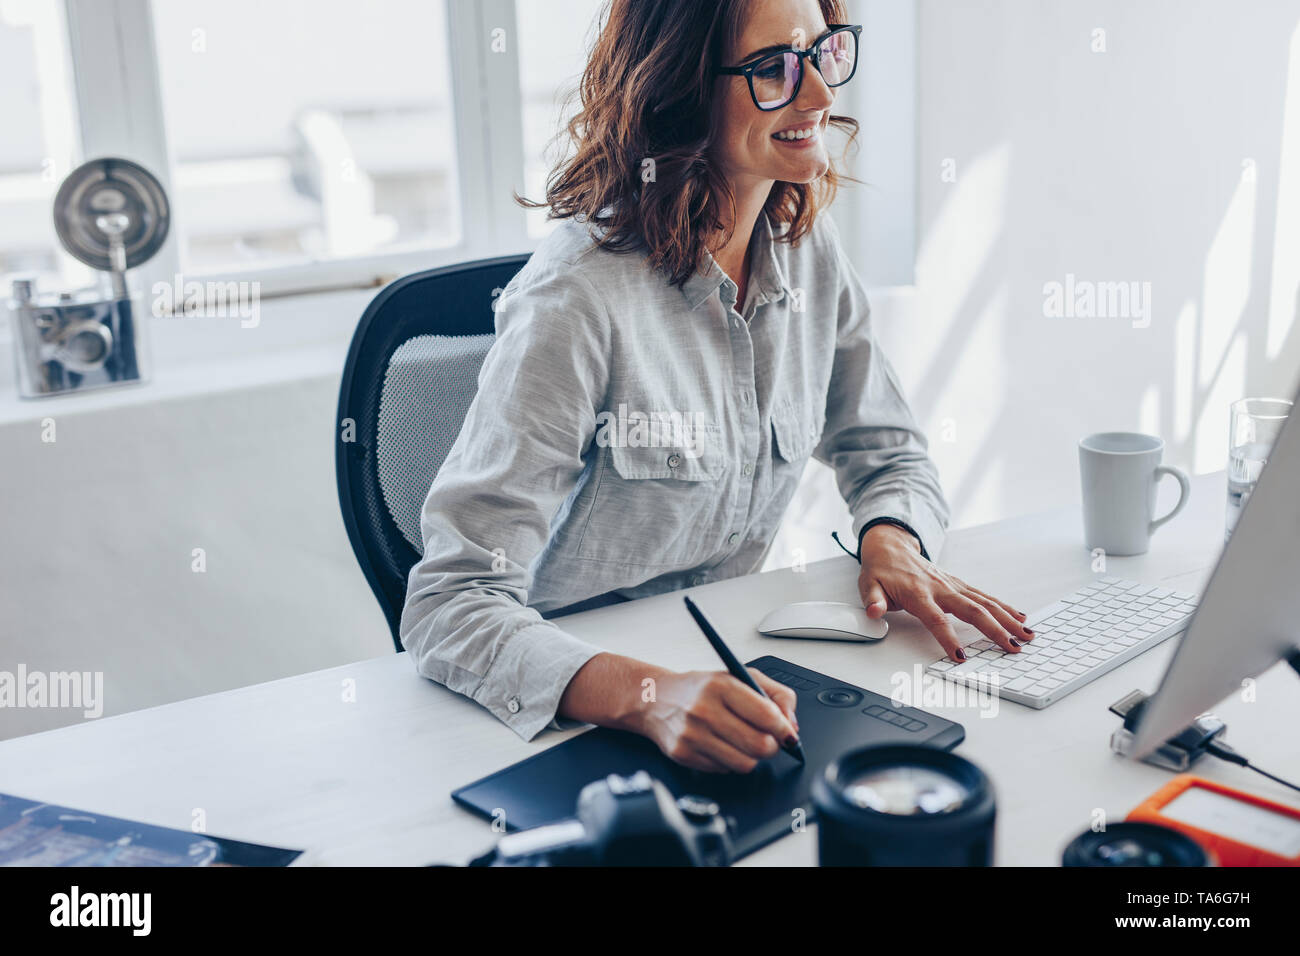 Young female photographer working on computer using drawing pad at office desk. Young caucasian woman using digital graphic tablet and drawing pen to  Stock Photo